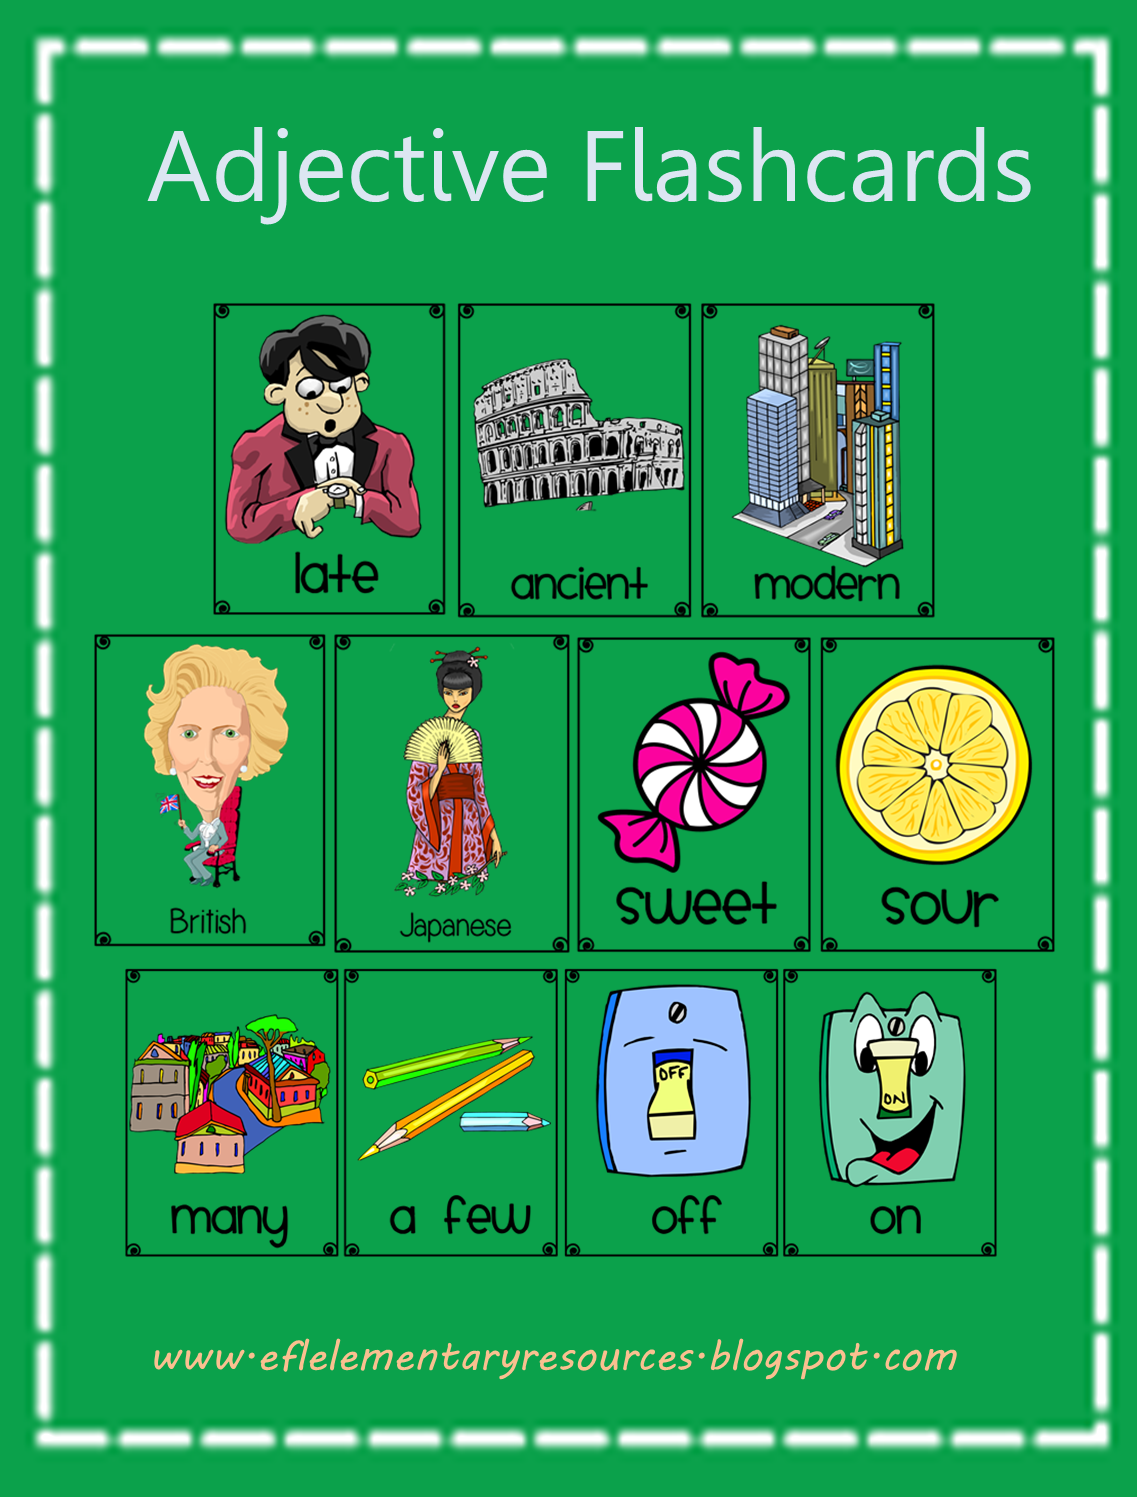 Worksheet Elementary Adjectives efl elementary teachers adjectives for ell flashcards i made a big collection of adjective it easy to classify them 101 there are f